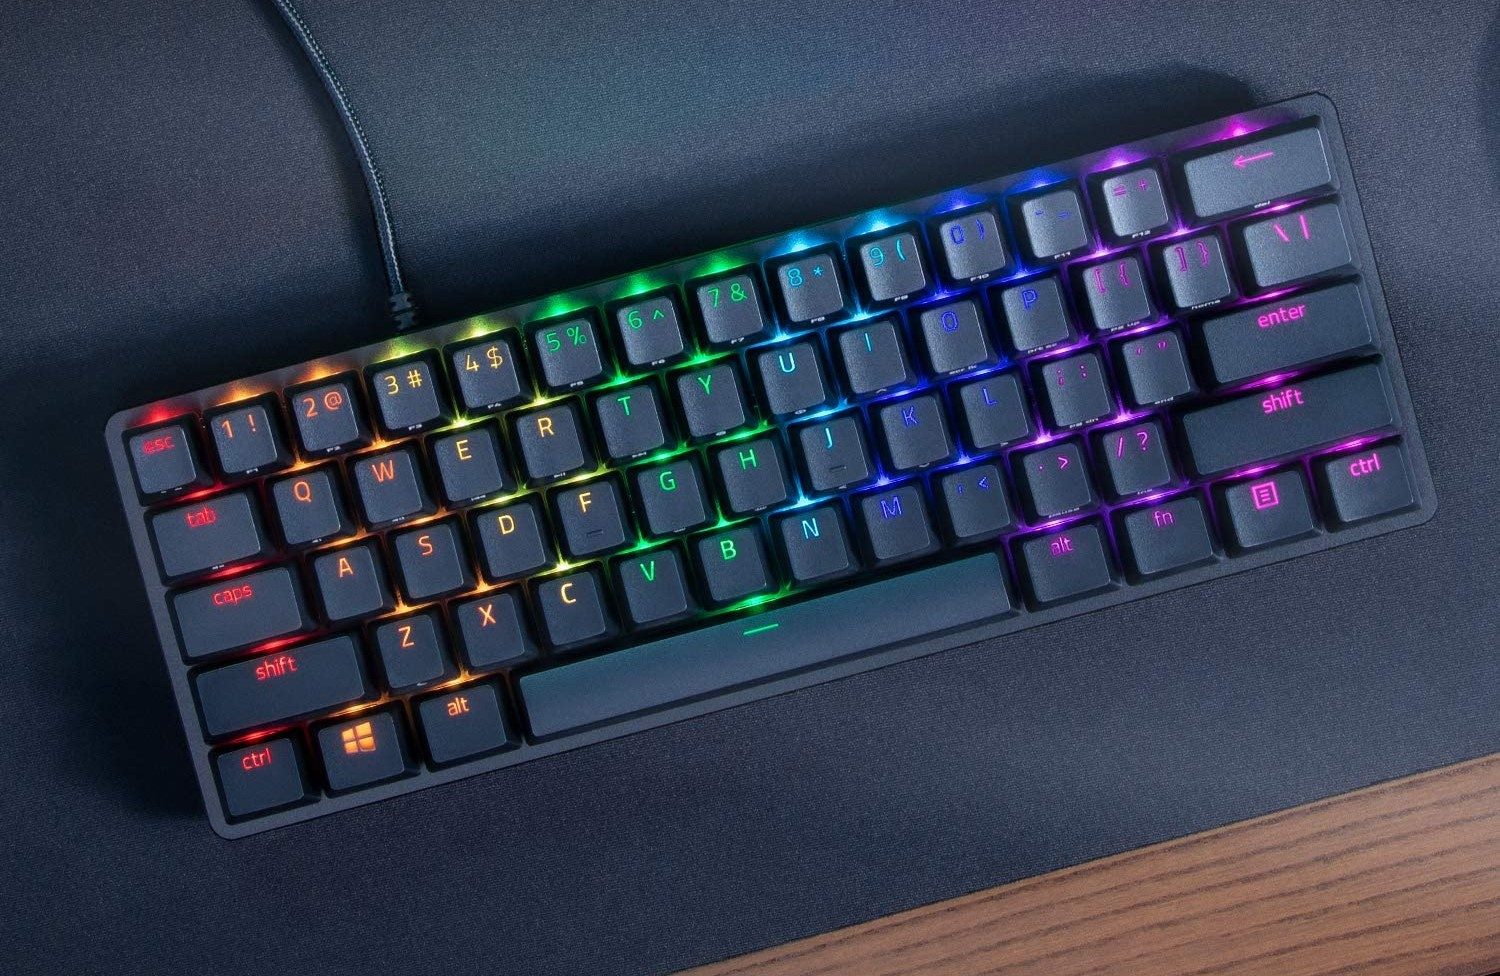 Razer's Huntsman Mini is an ultra-compact mechanical keyboard that works well for games.